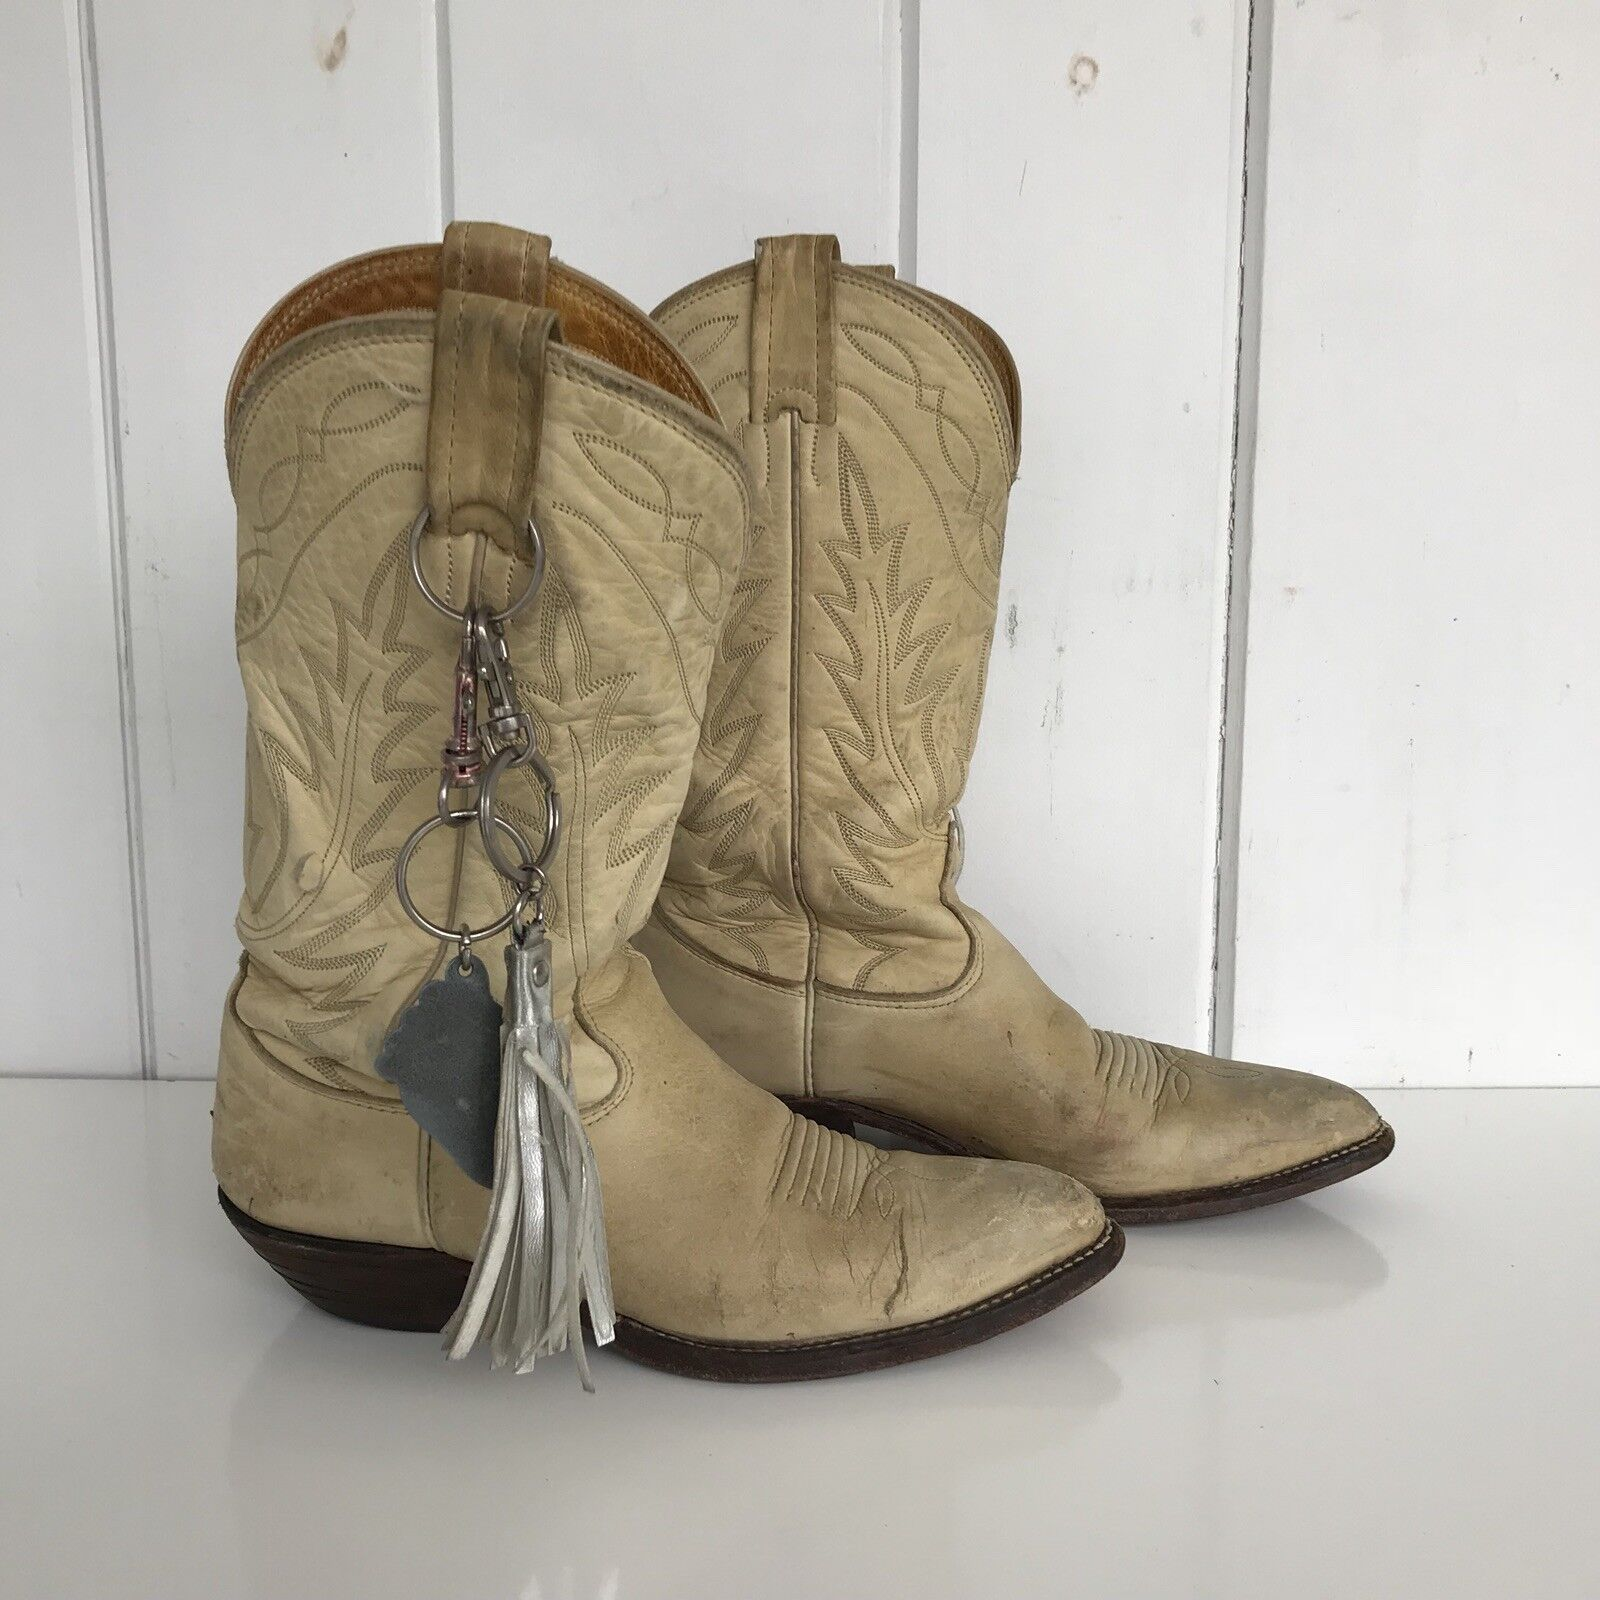 Nocona Boots Womens Deer Tanned Bone Leather Cowgirl Western Size 6C Very Worn